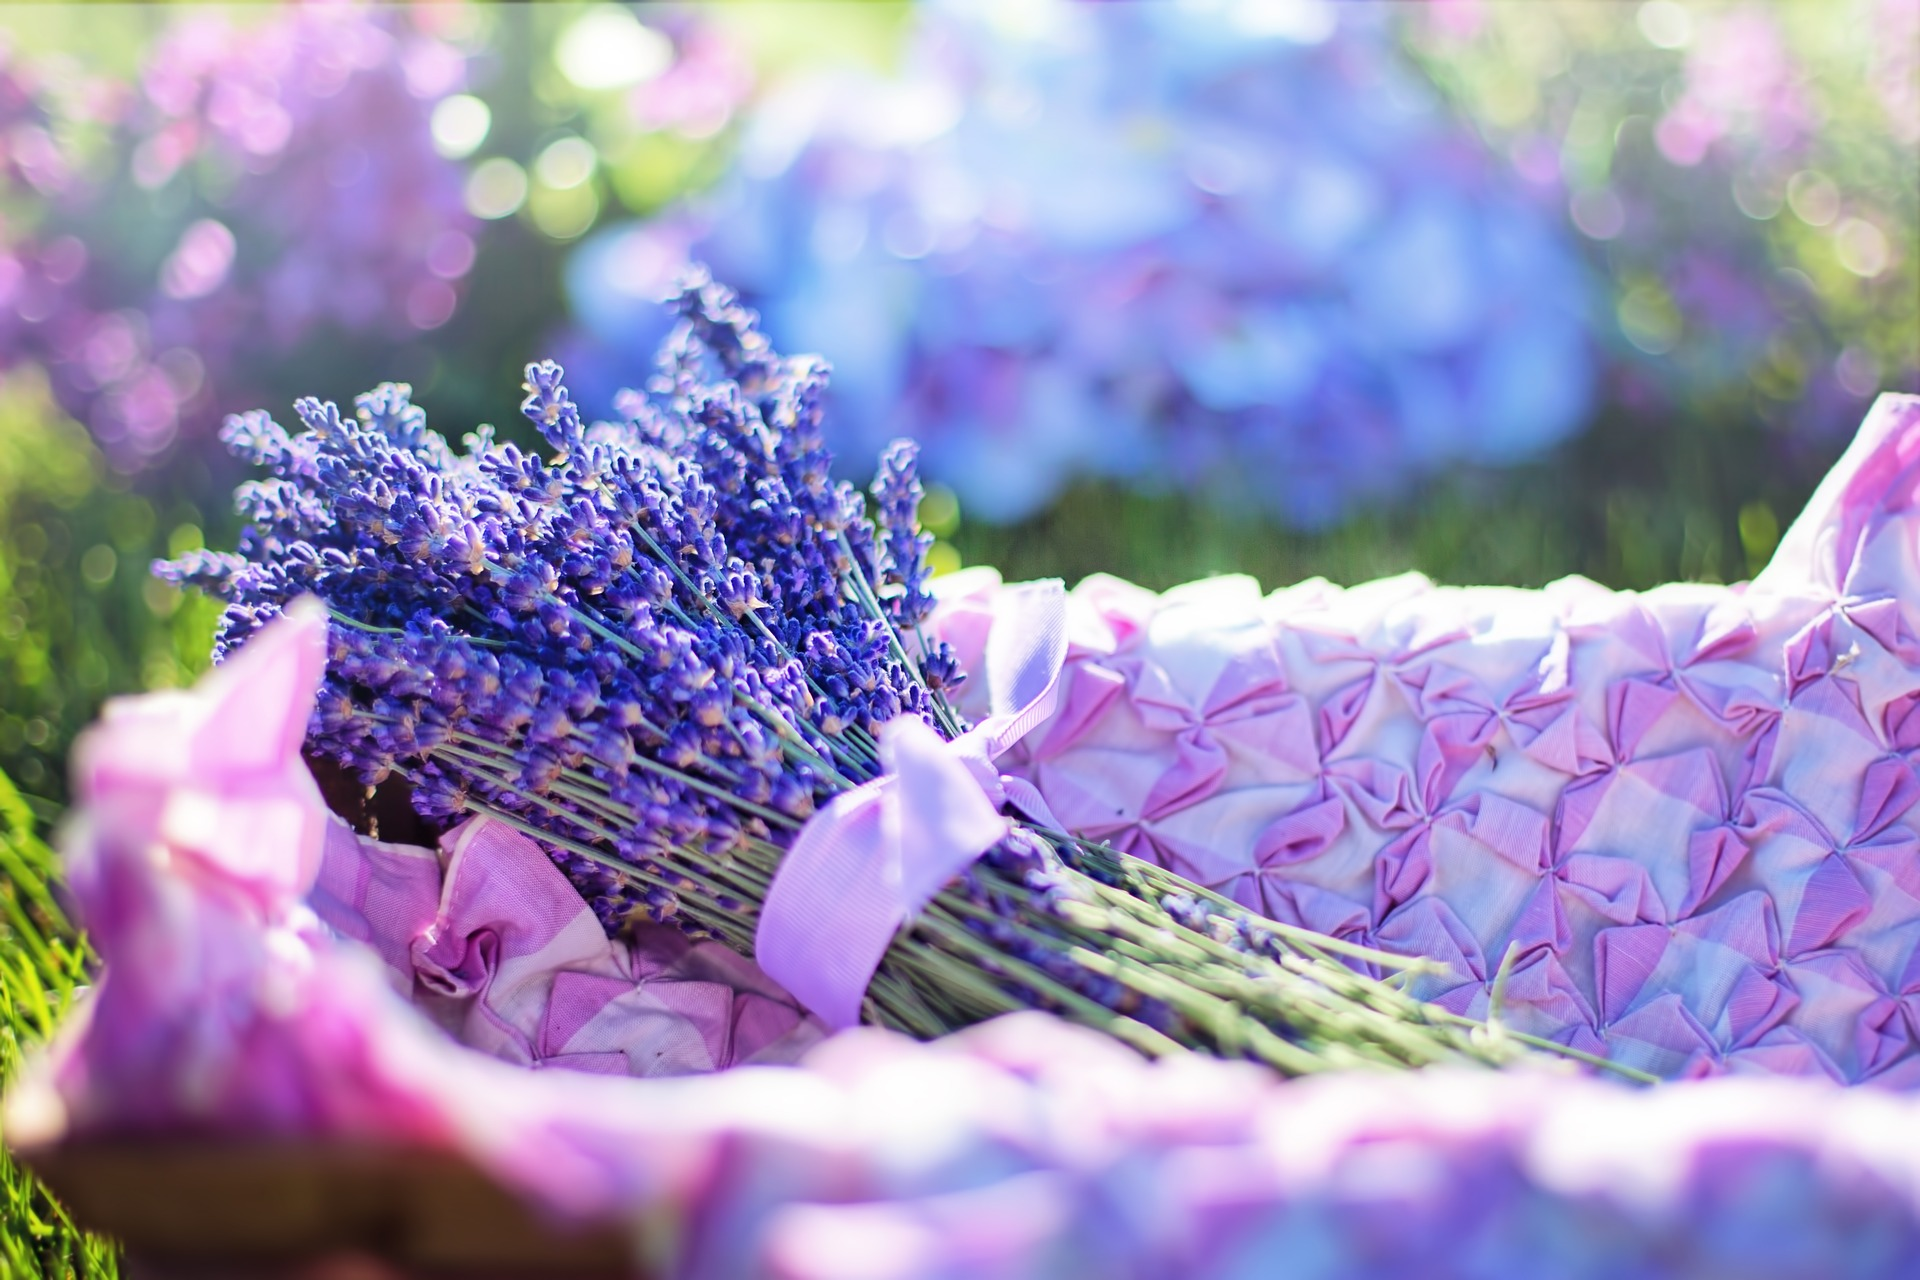 Lavender Flowers in the basket